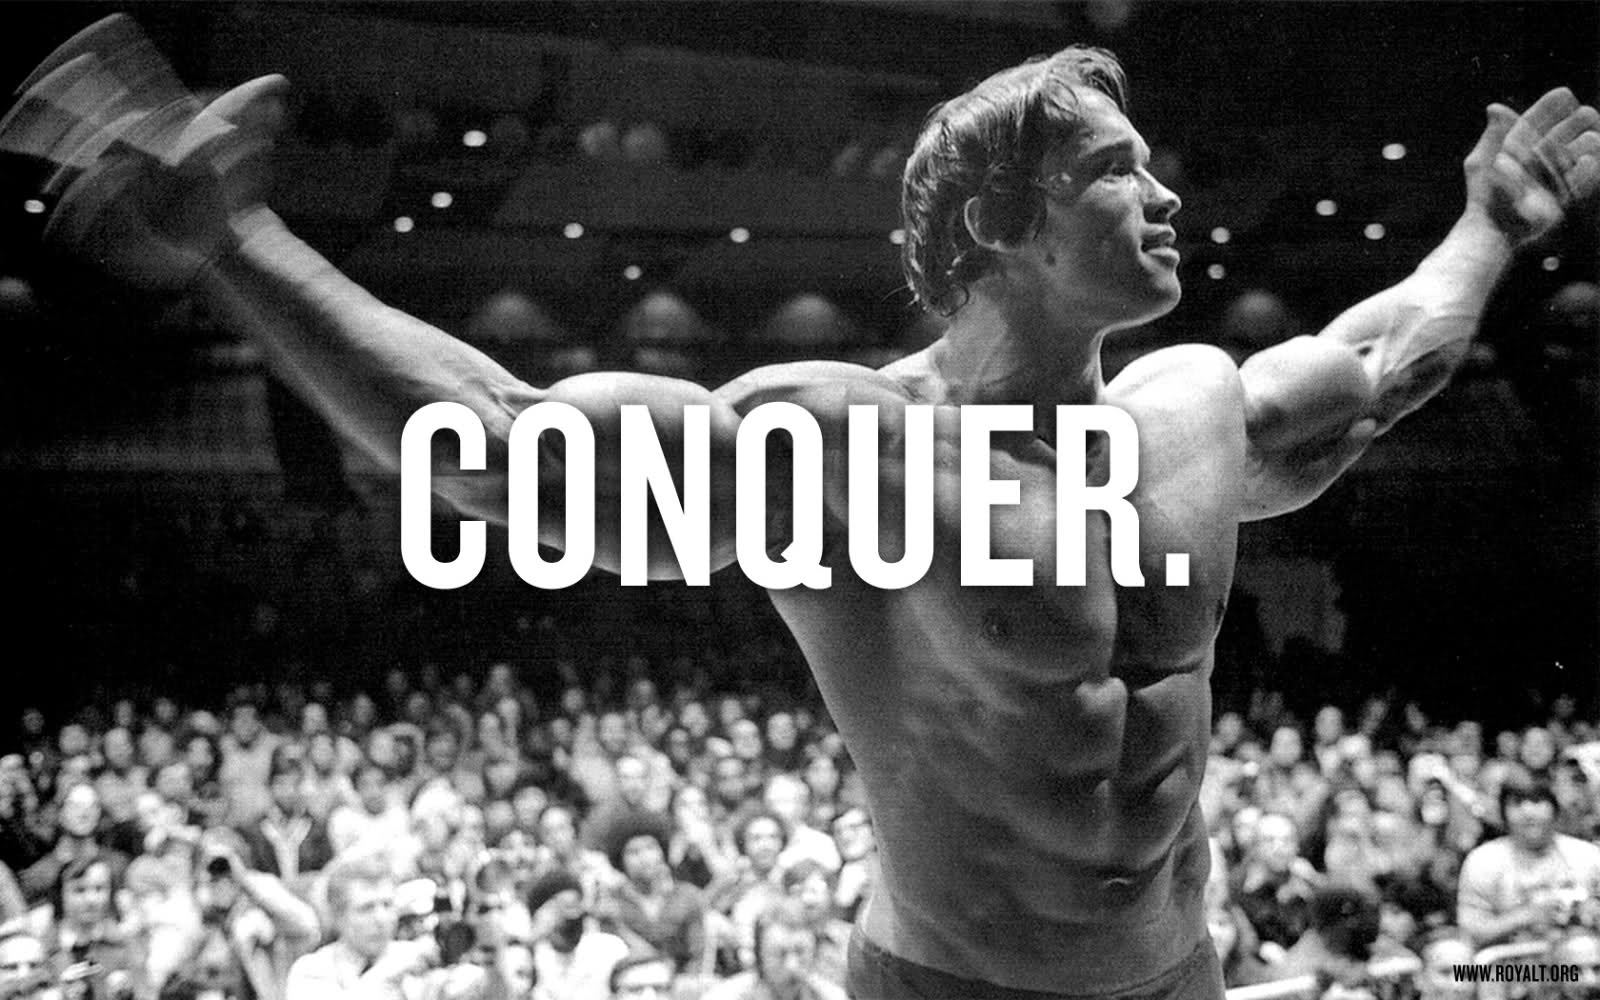 1600x1000 Bodybuilding Motivation Wallpapers HD